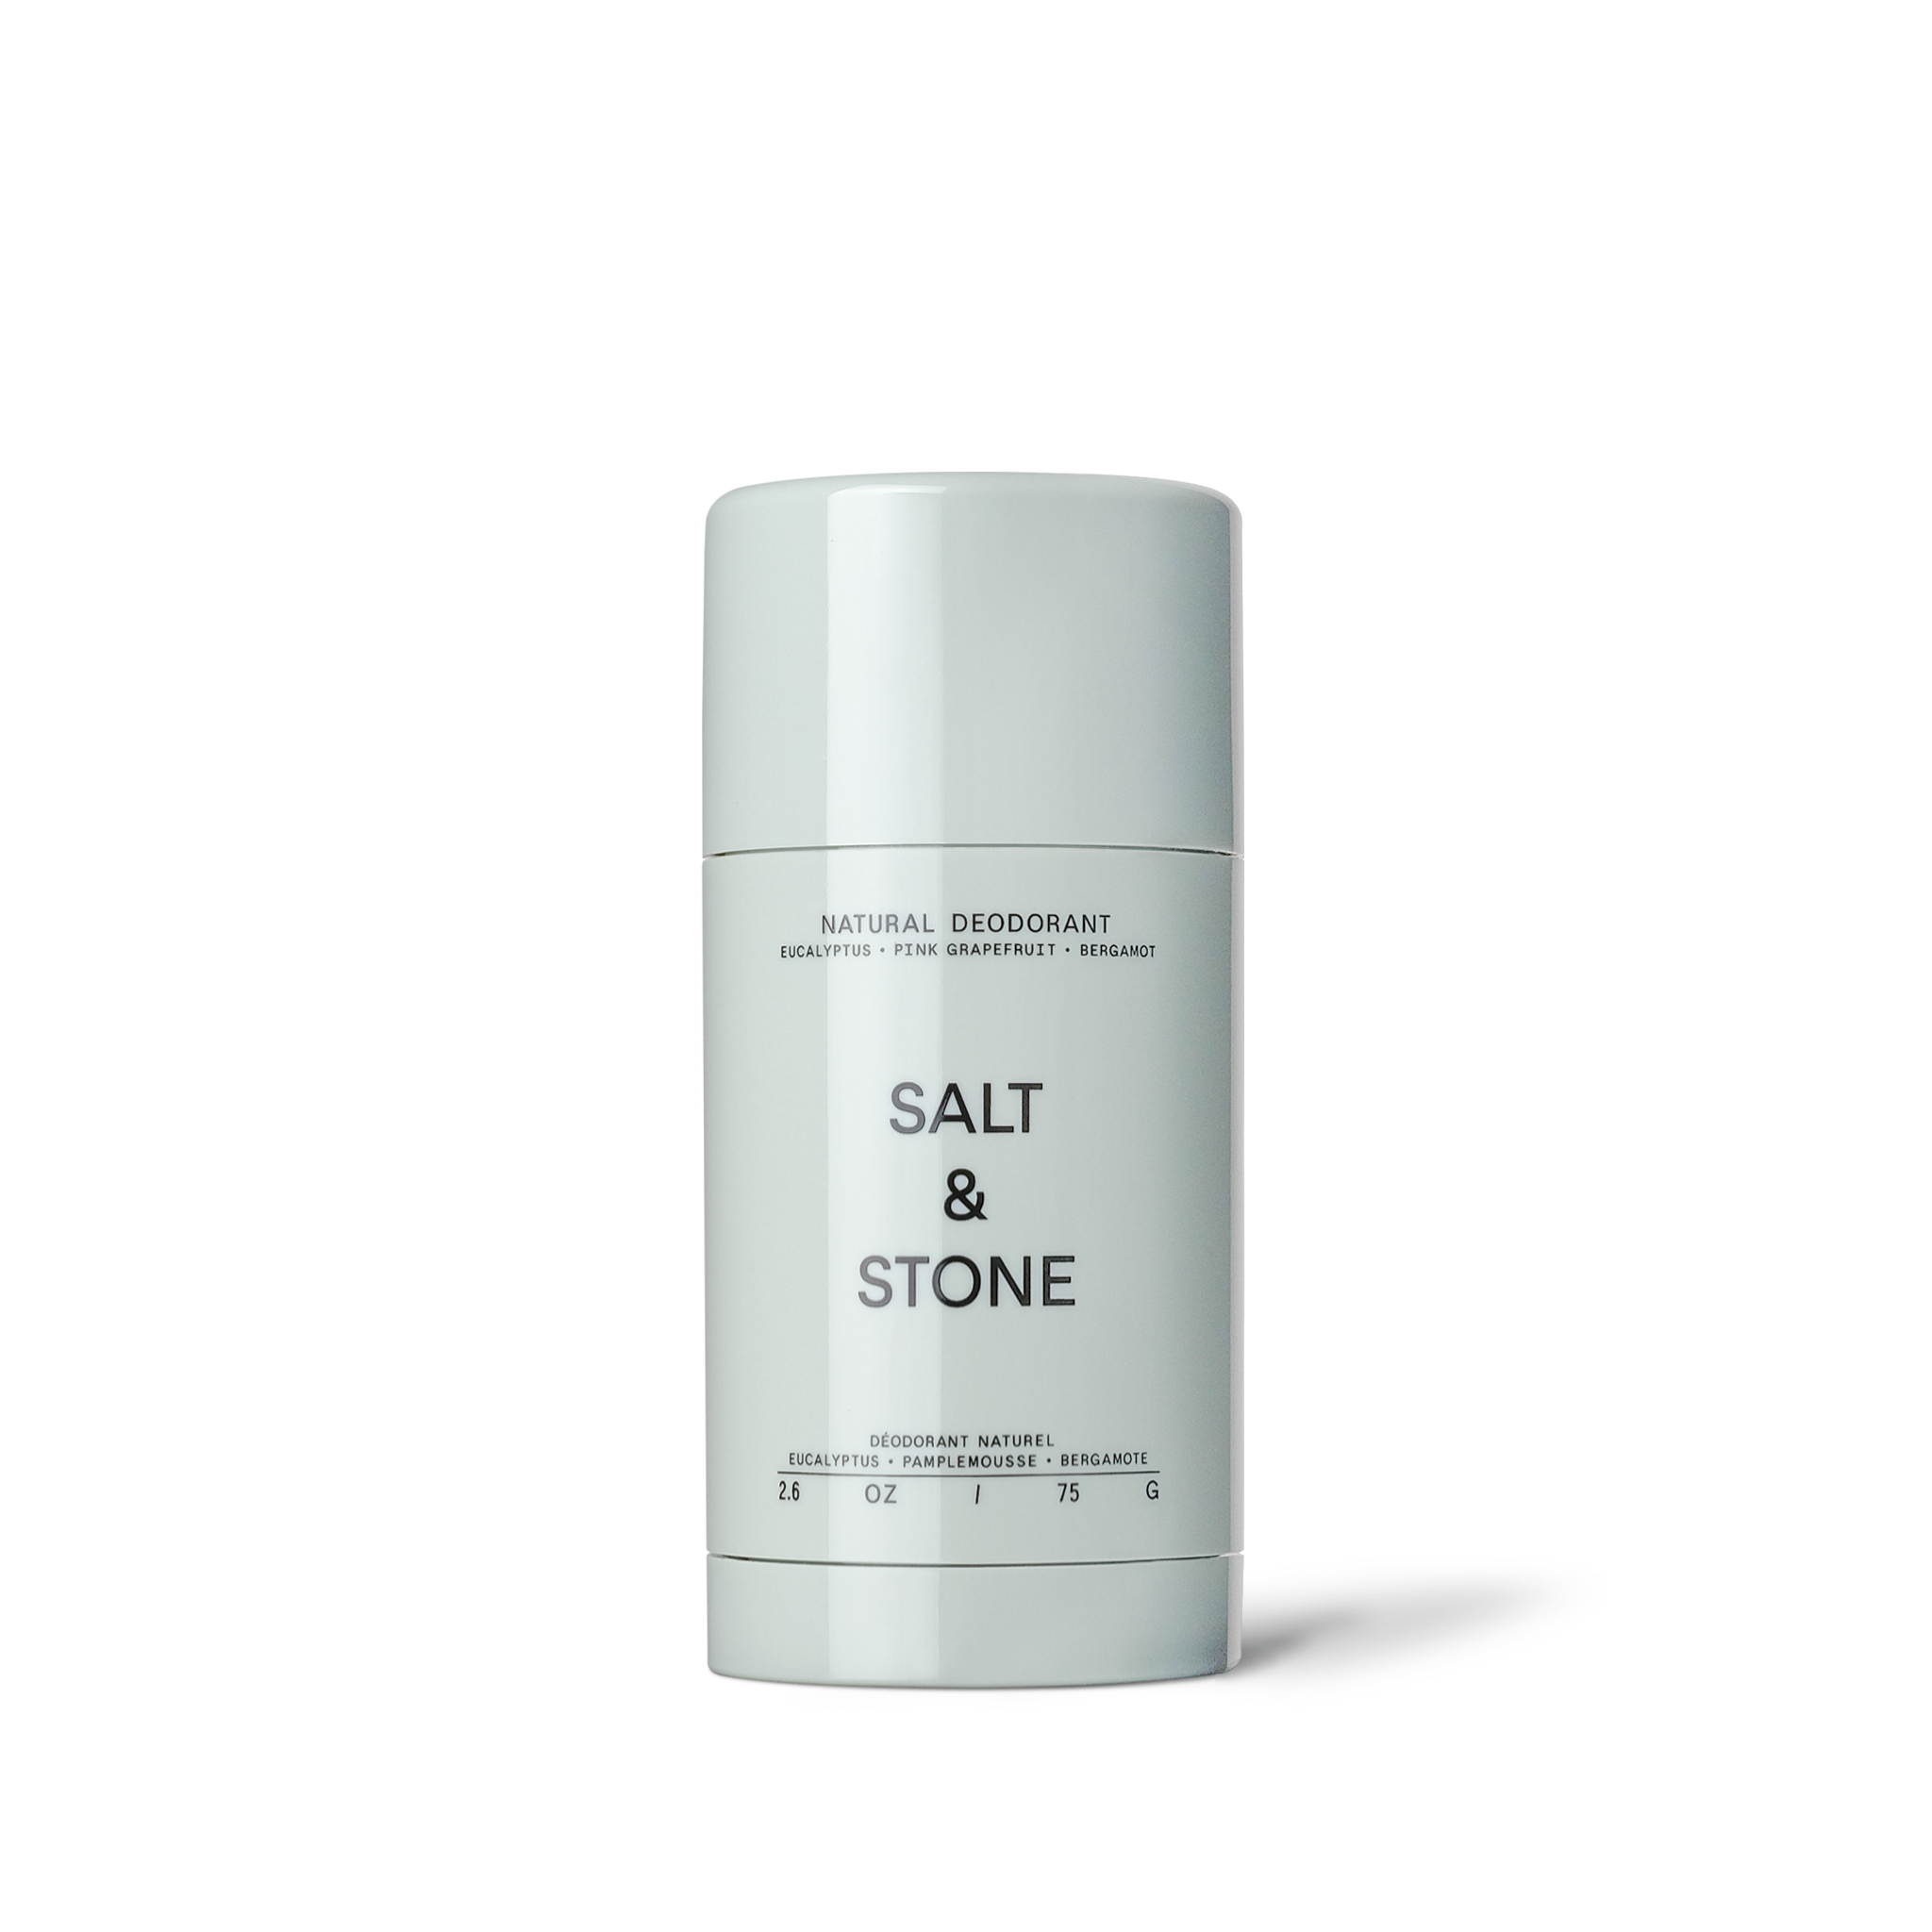 SALT & STONE - EUCALYPTUS AND BERGAMOT FORMULA NO2